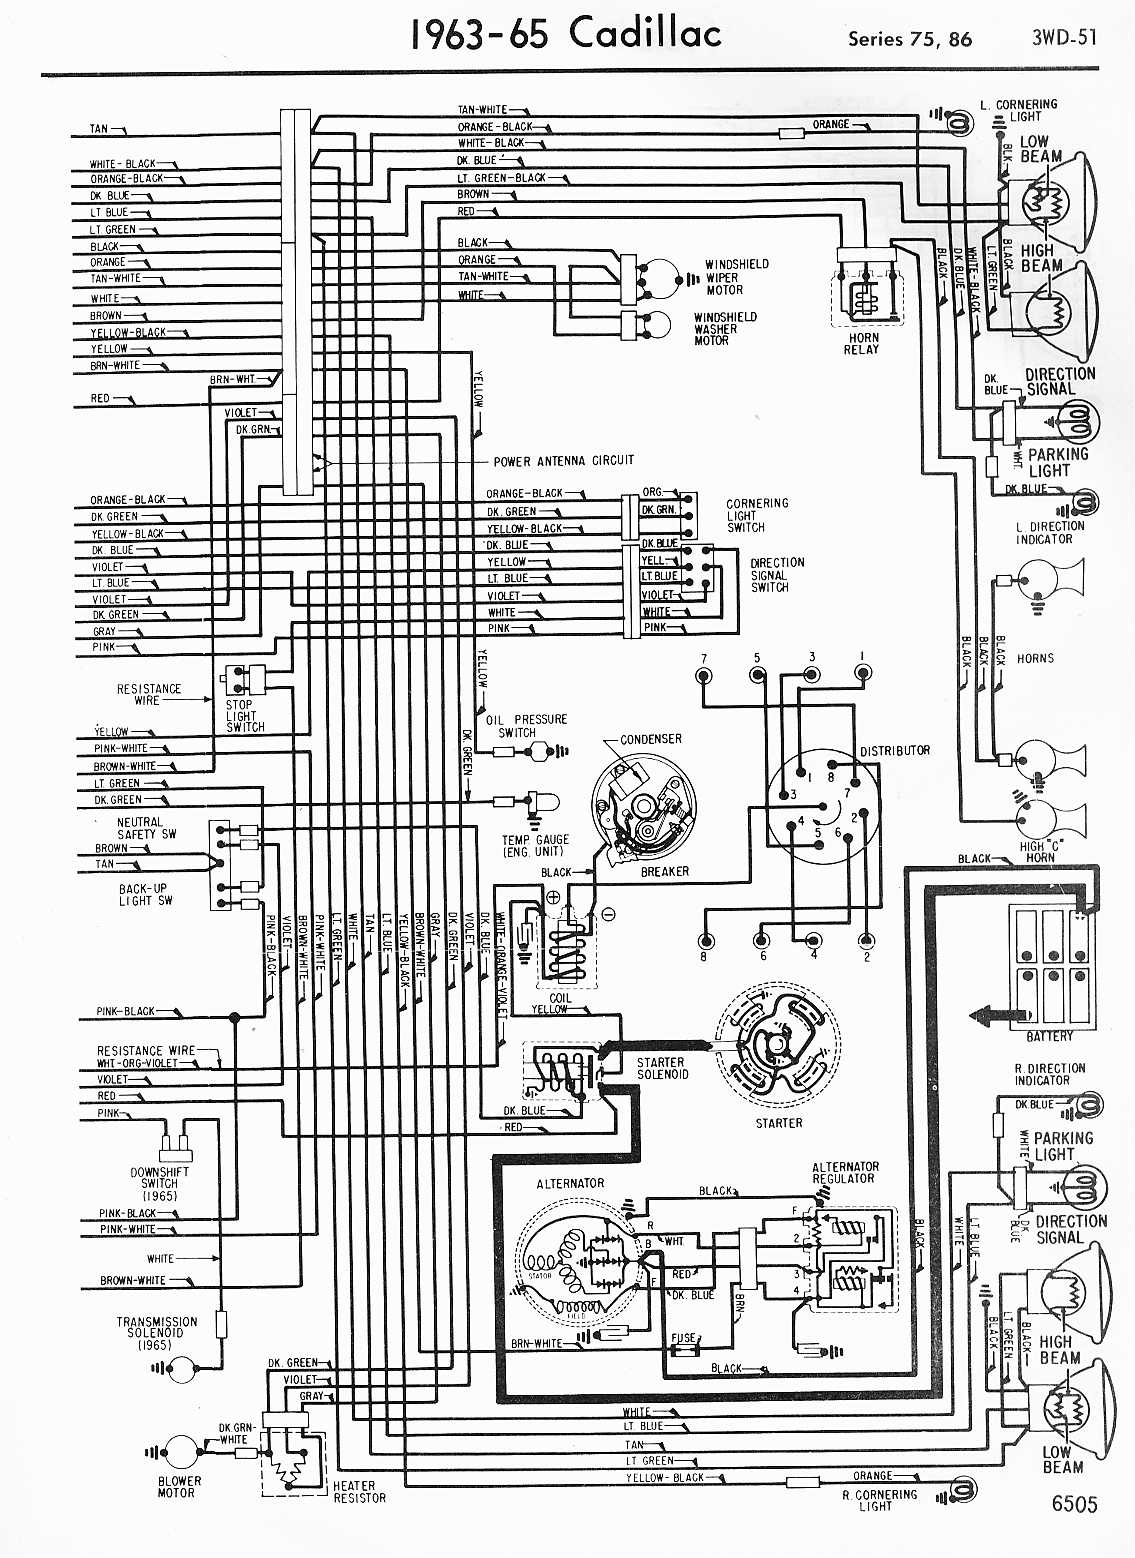 1965 Series 75 right · more Buick ads · Buick wiring diagrams